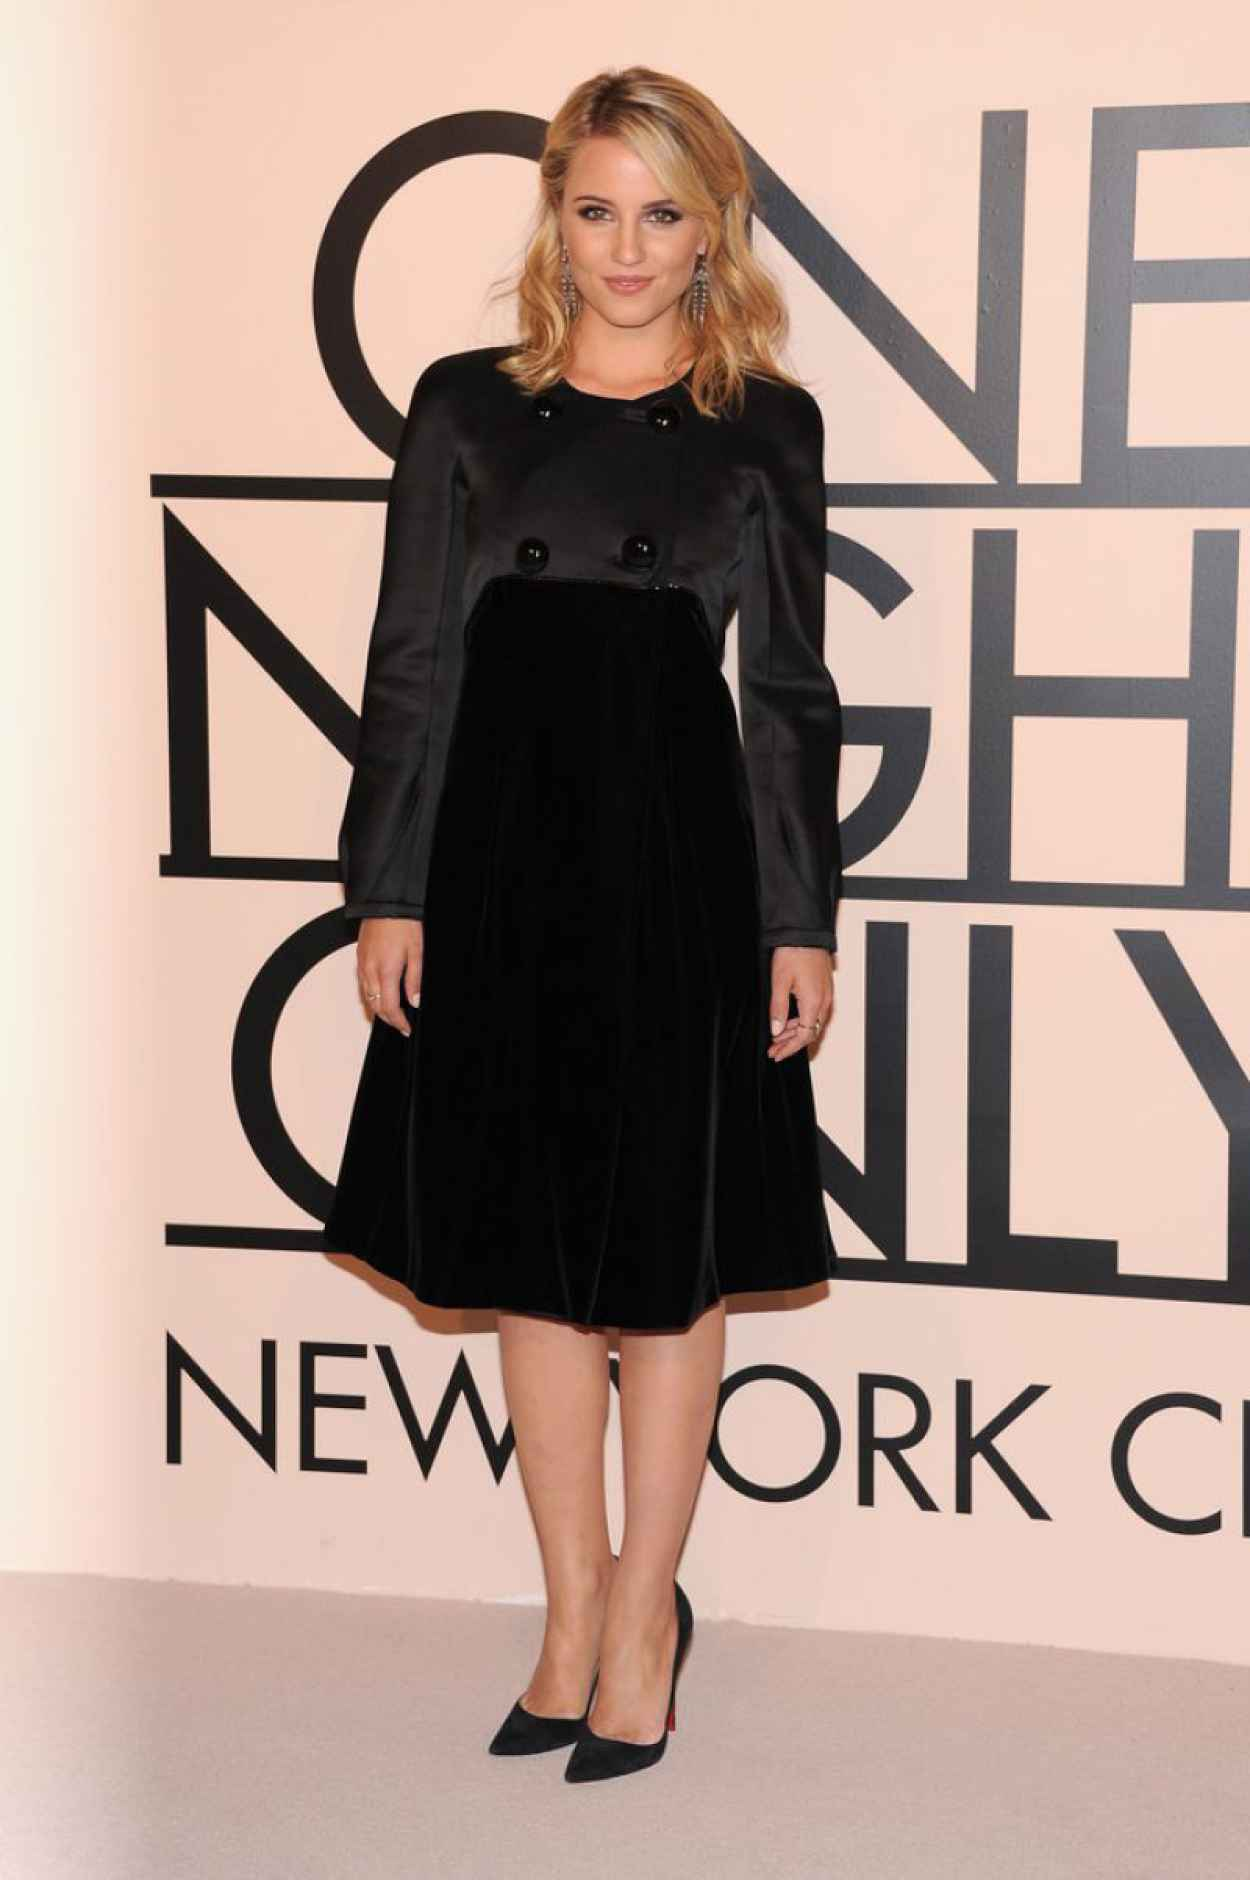 Dianna Agron at Giorgio Armani One Night Only New York City-1